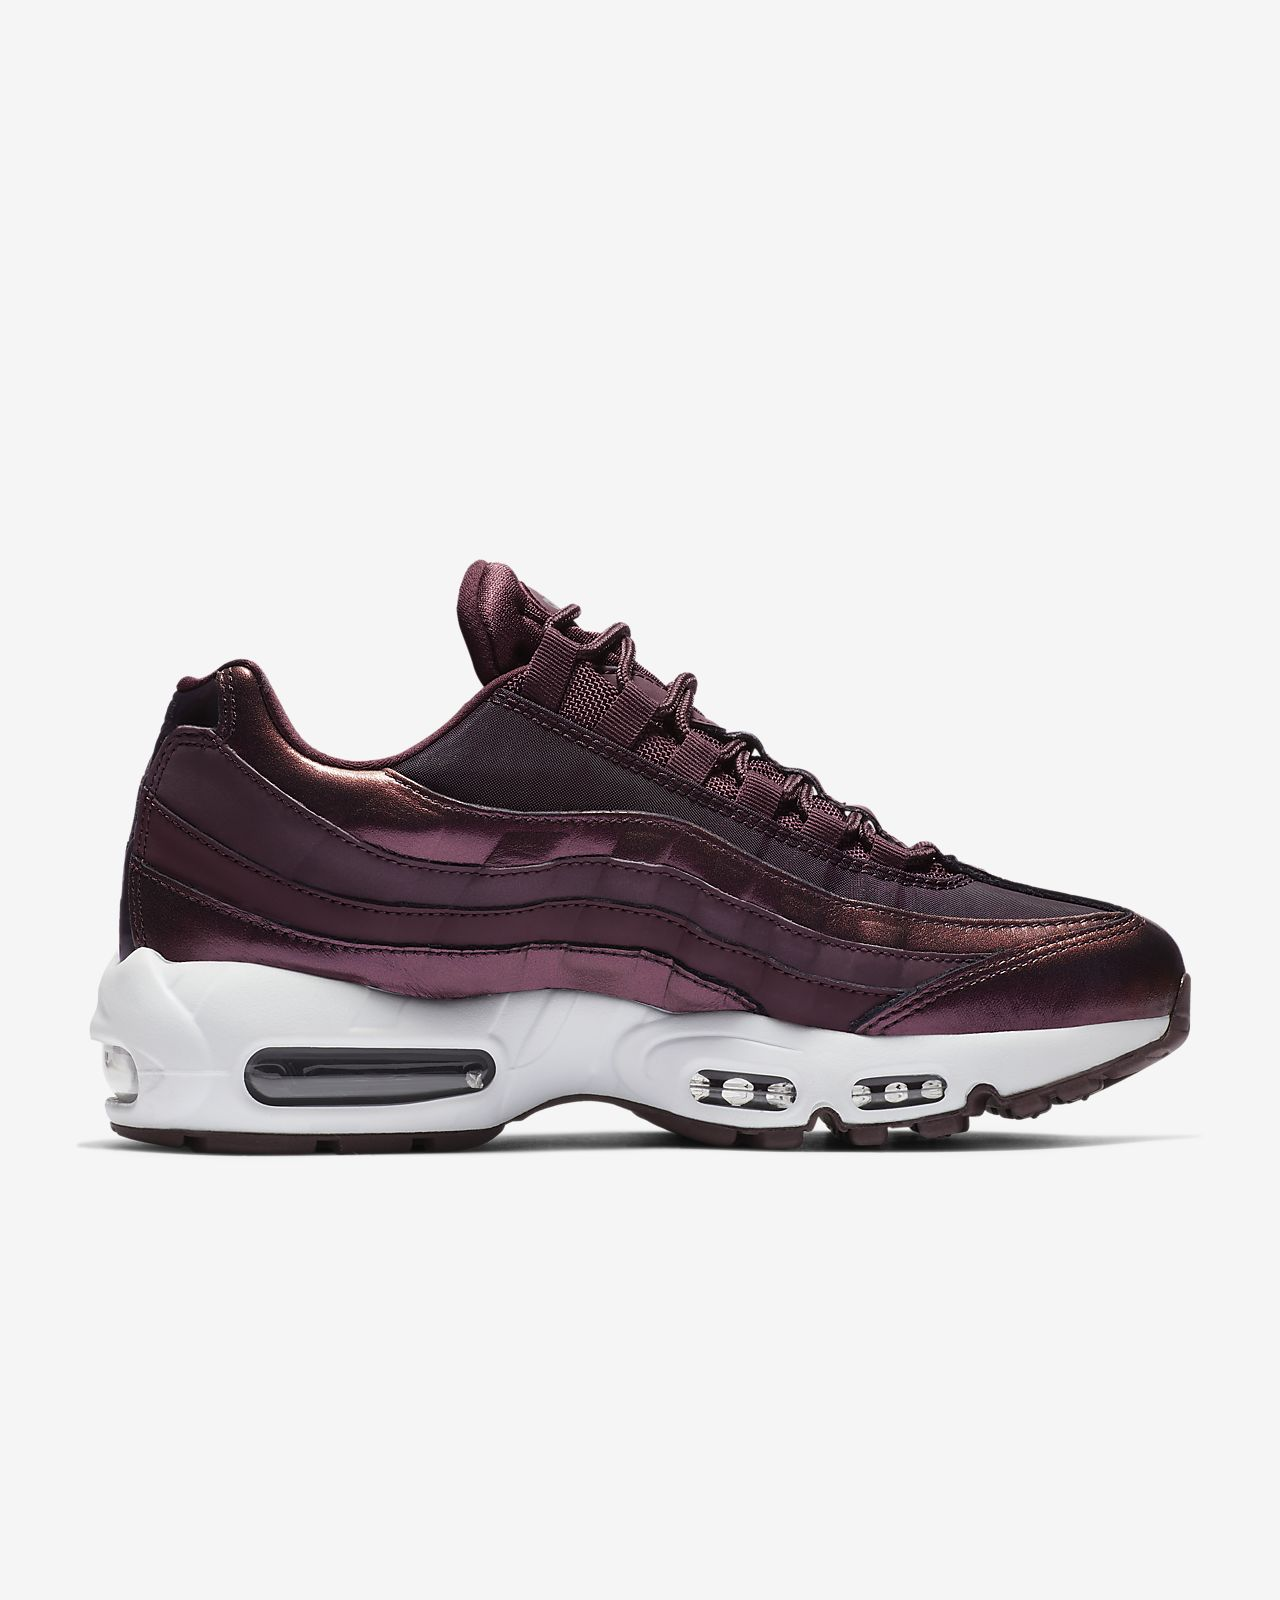 huge selection of 844c8 68a33 Chaussure pour Femme. Nike Air Max 95 Lux